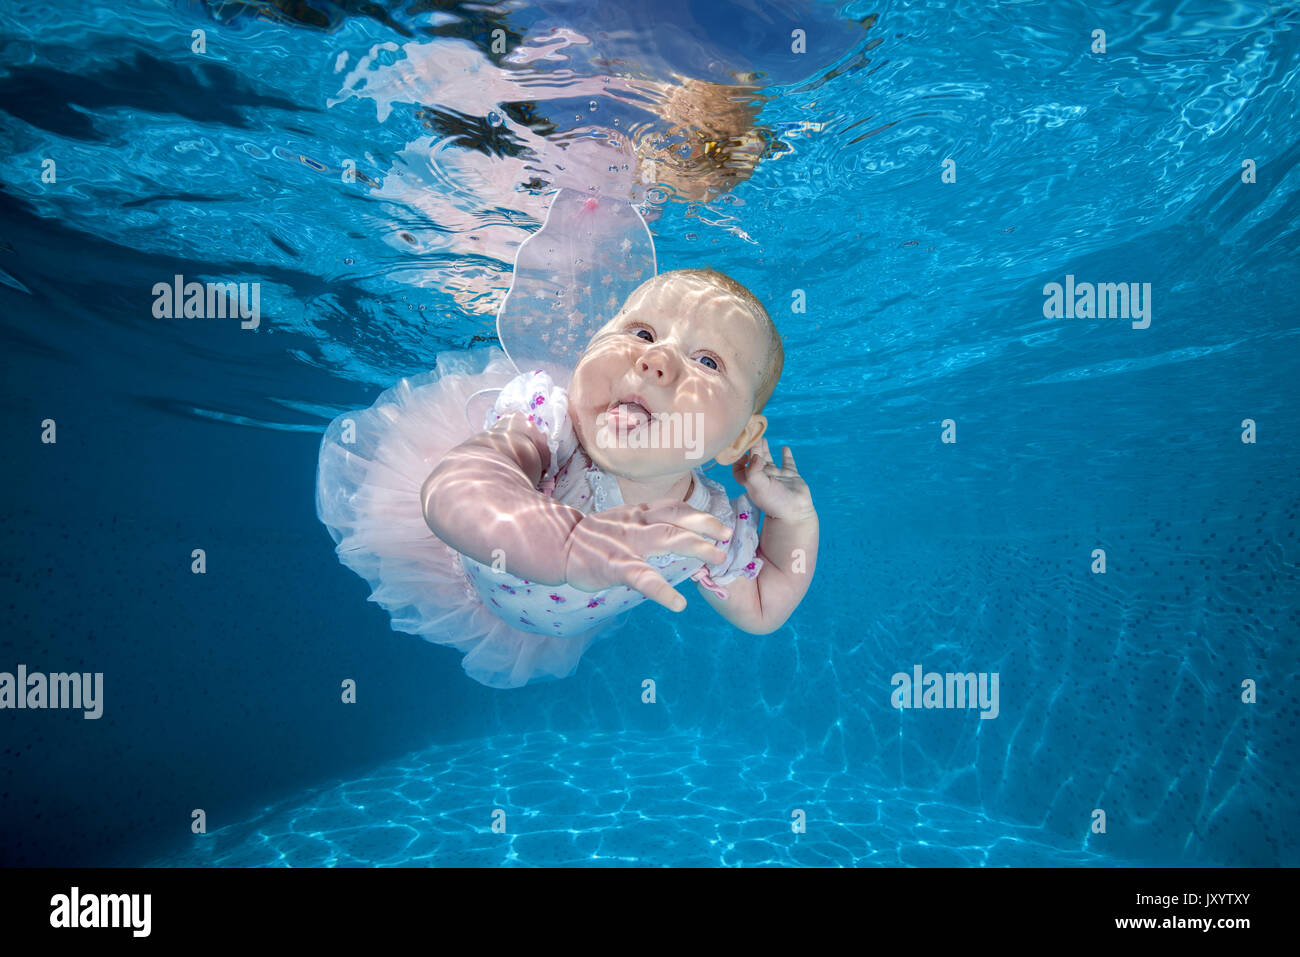 Little girl in fairy dress under water in the pool 2. AMUSING shots show the exhilarated and confused faces water babies can pull when dunked into swi - Stock Image